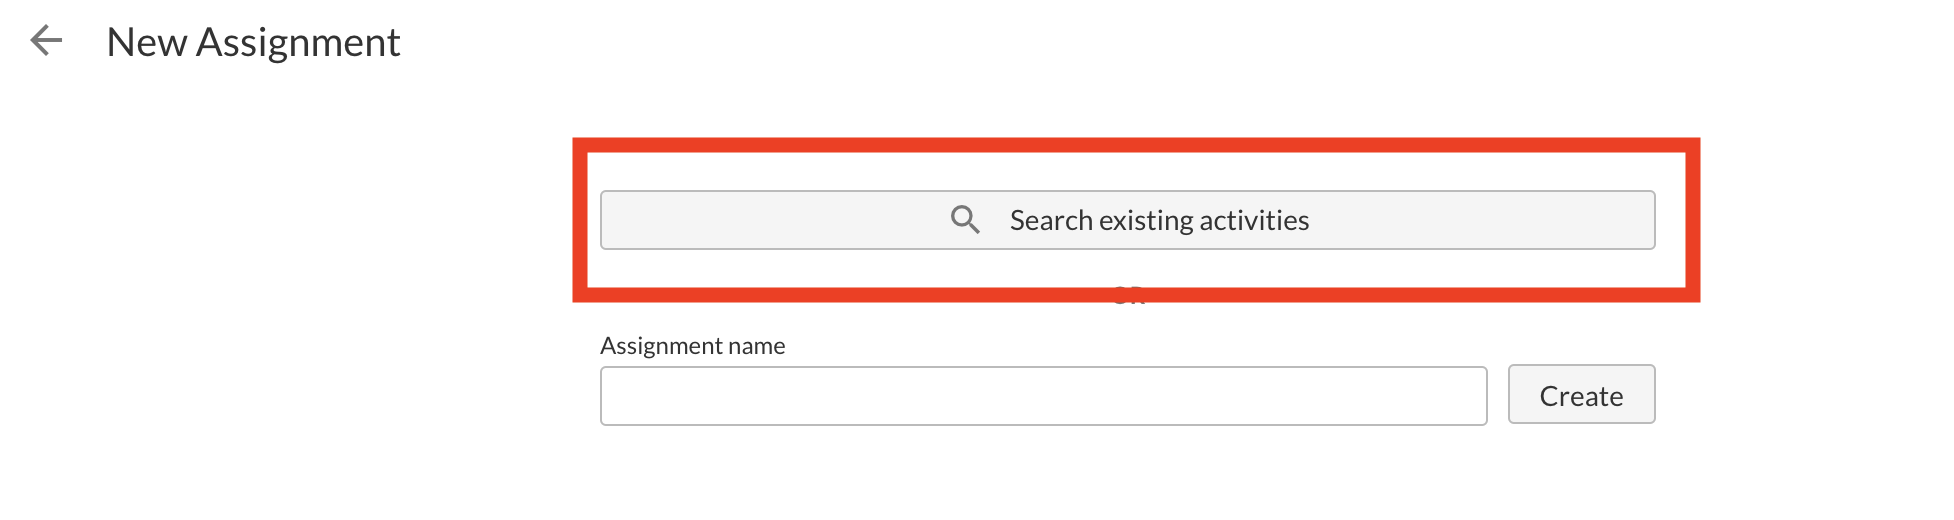 New assignment dashboard with Search Exisiting Activities button highlighted